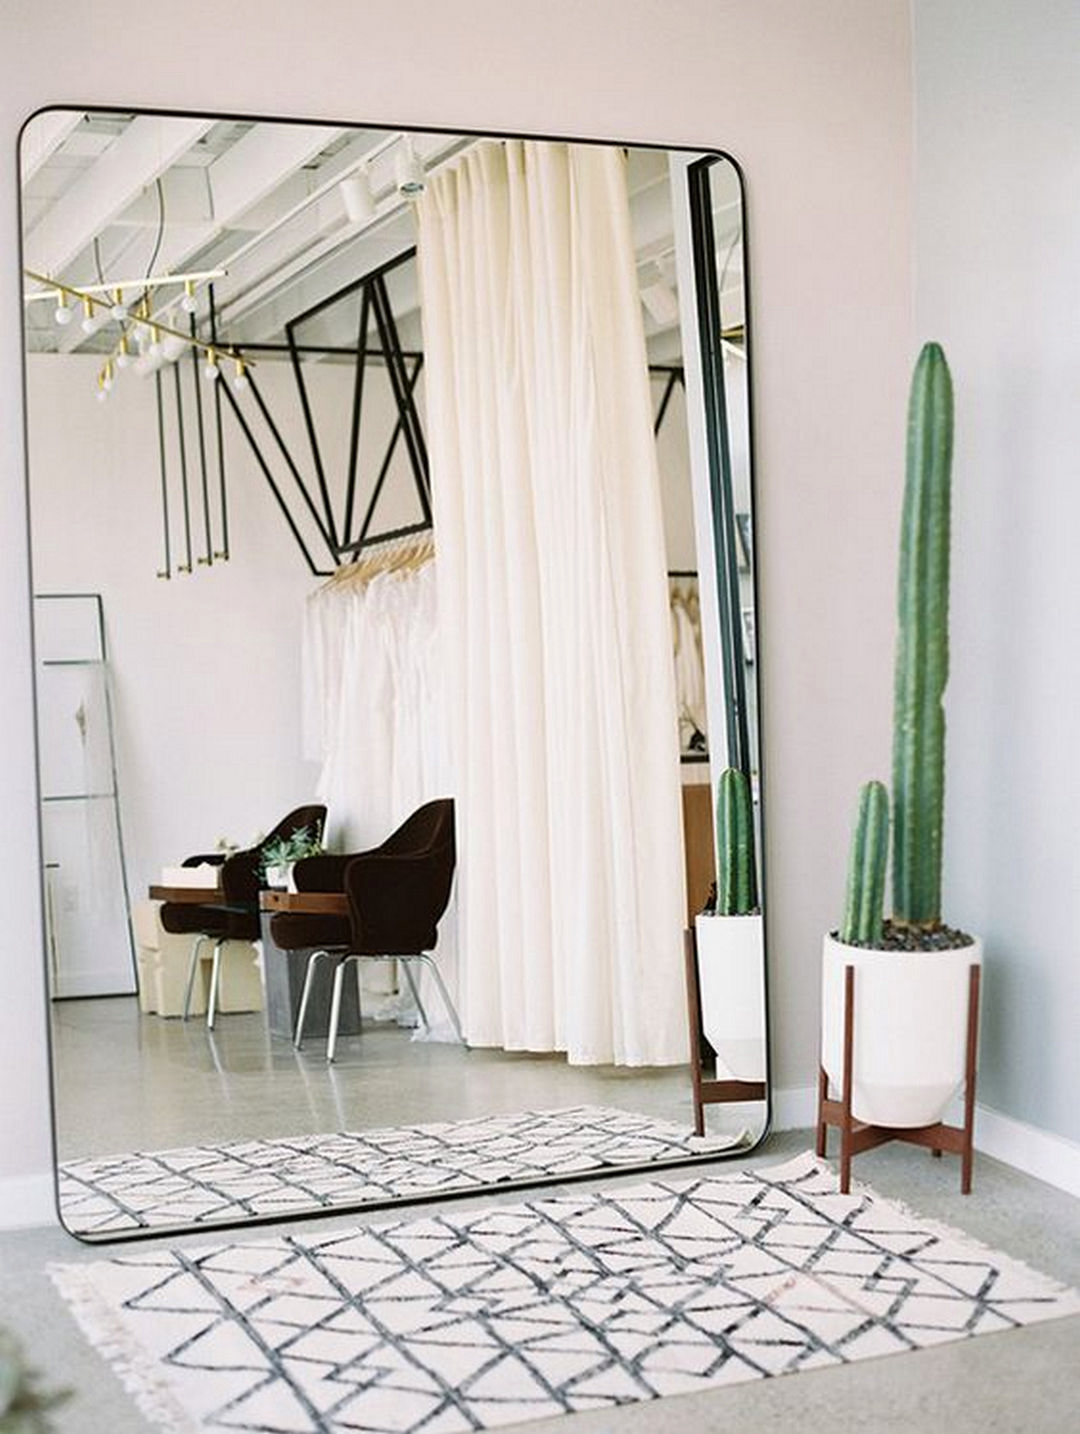 10 Bedroom Mirrors Thatu0027ll Make Your 2018 Absolutely Magical Bedroom Mirrors  10 Bedroom Mirrors